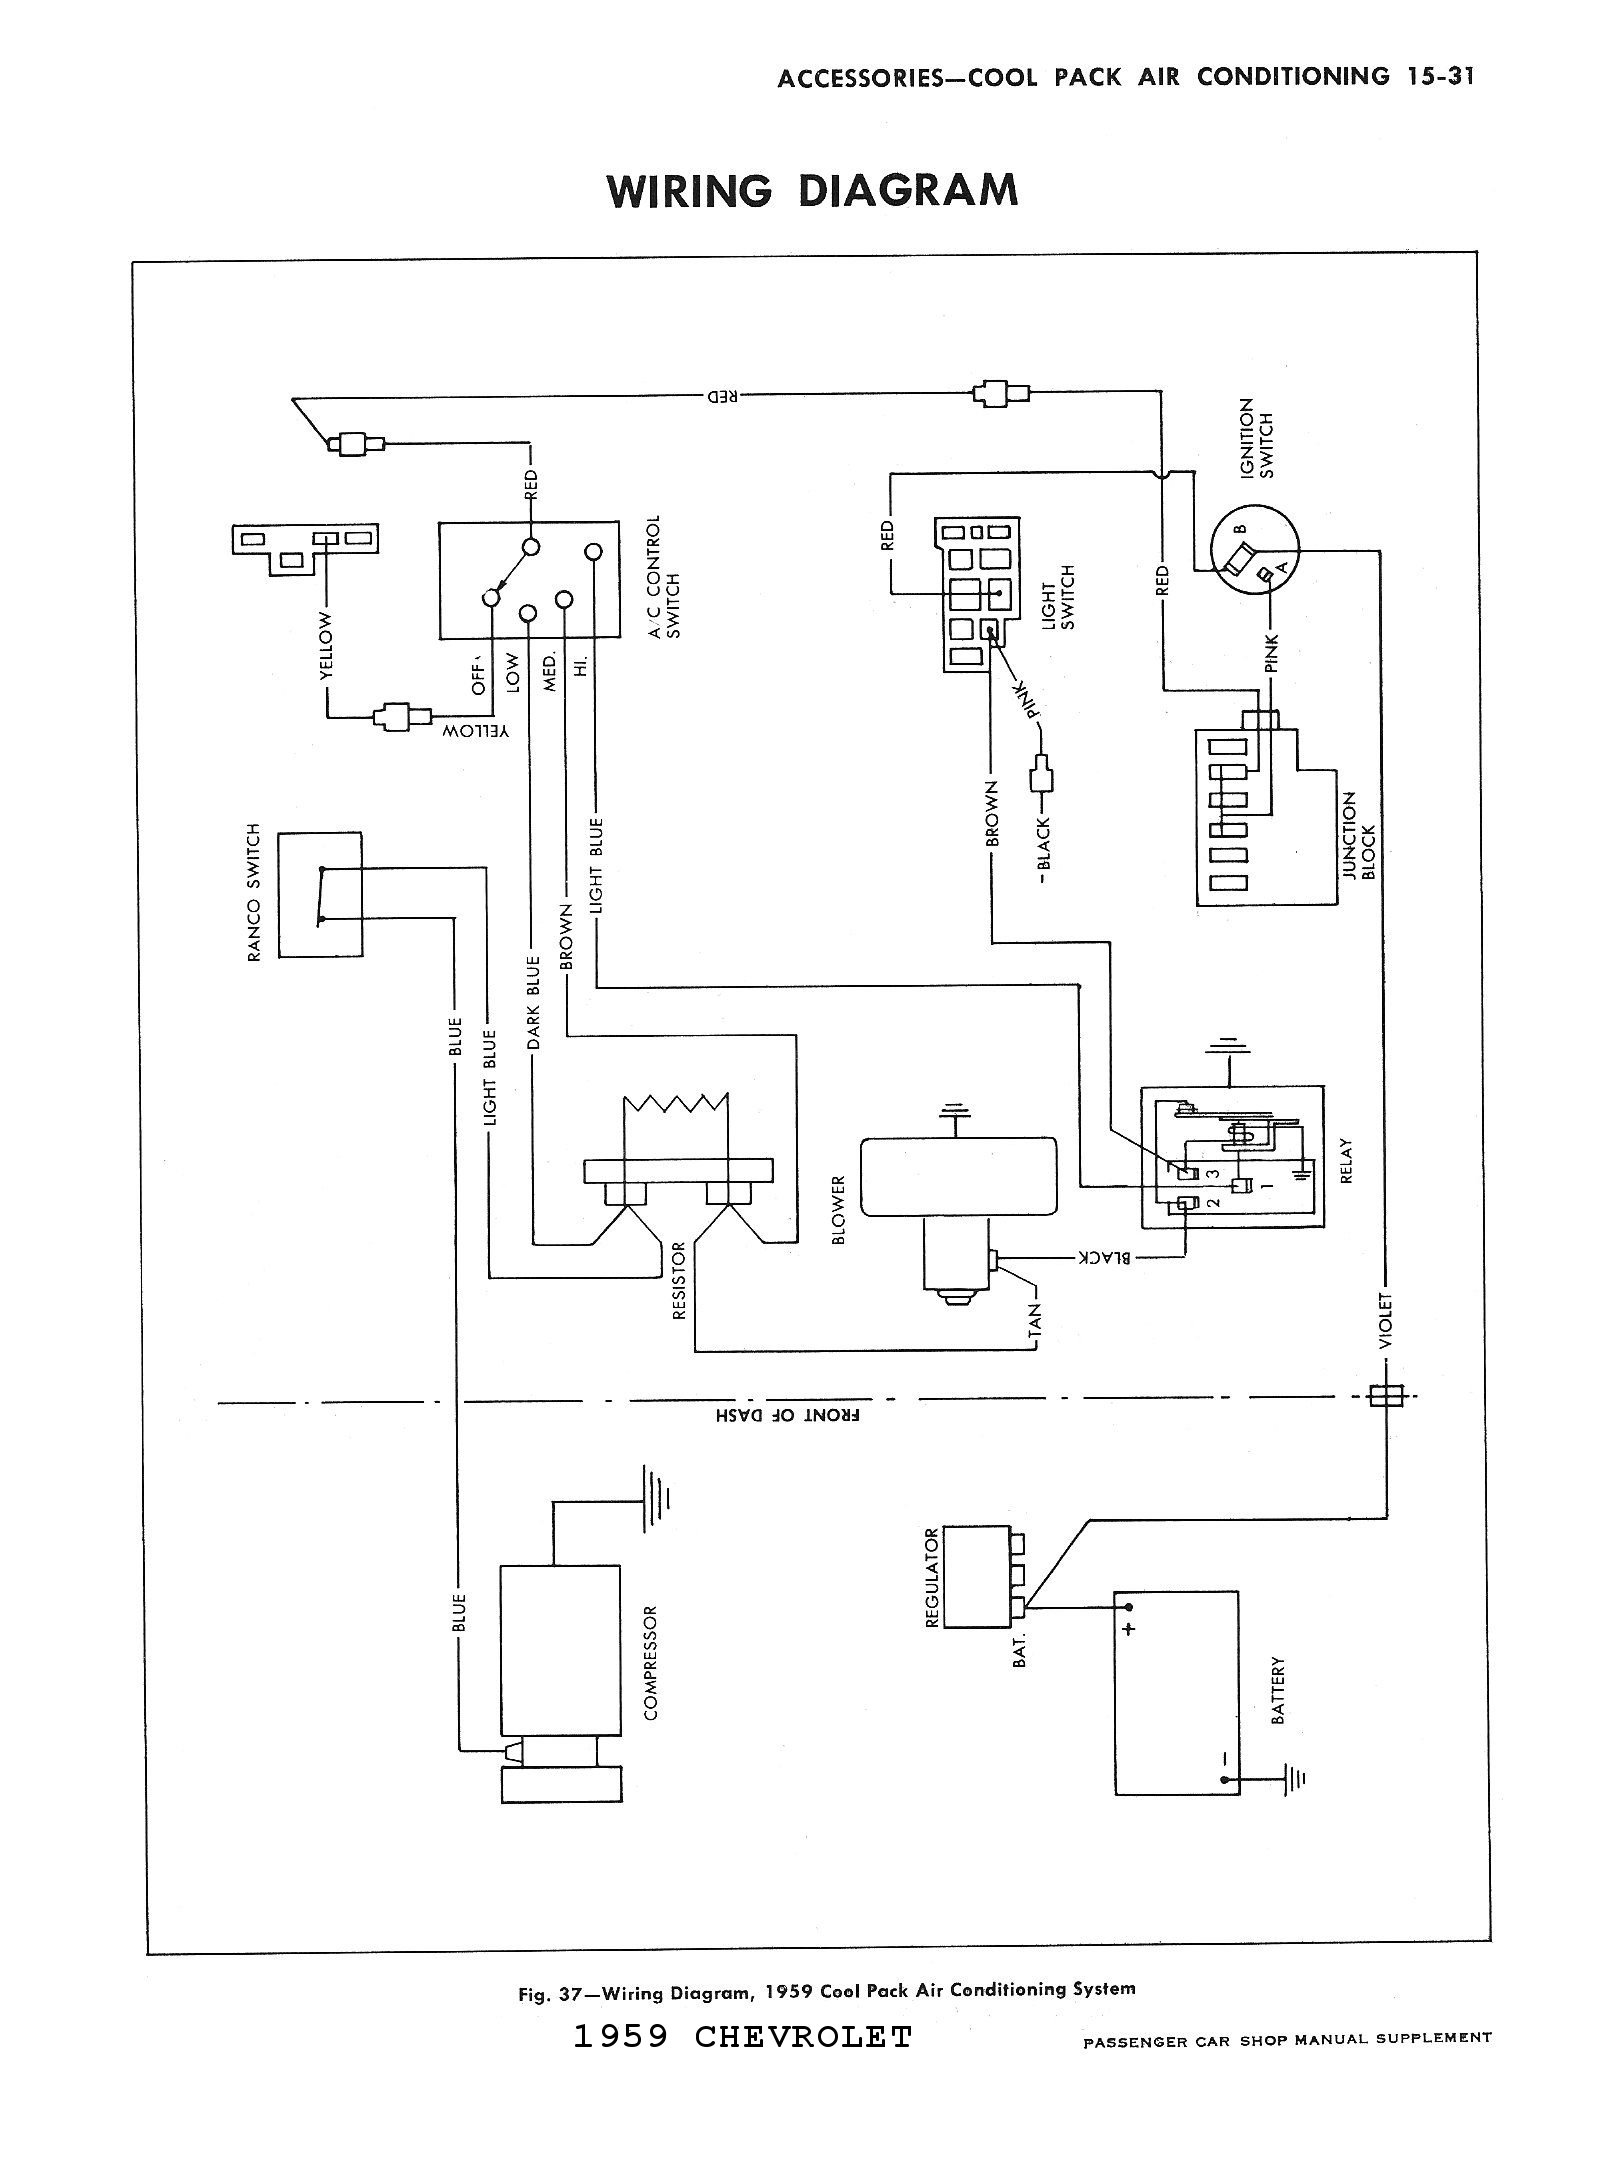 2002 Corvette Starter Wiring Diagram Schematics Diagrams 79 Chevy Get Free Image About 1962 1965